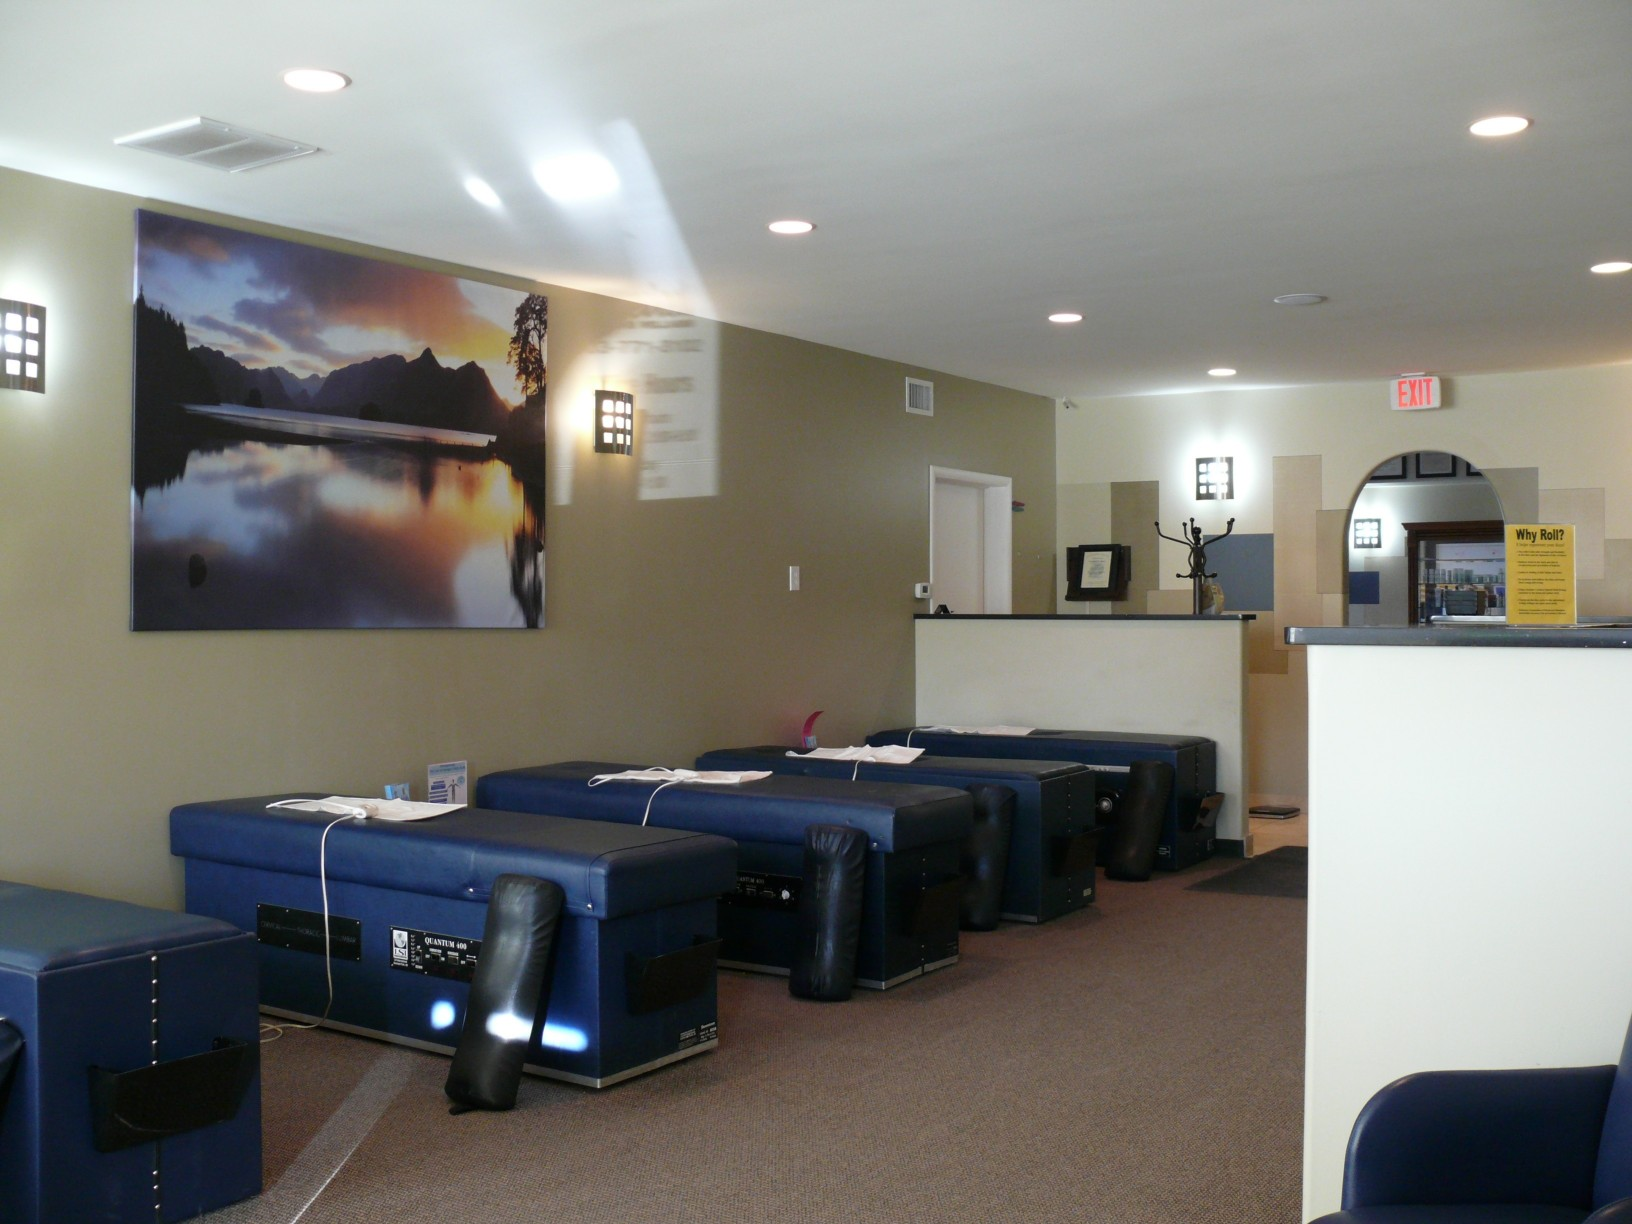 Belleview Spine and Wellness image 2